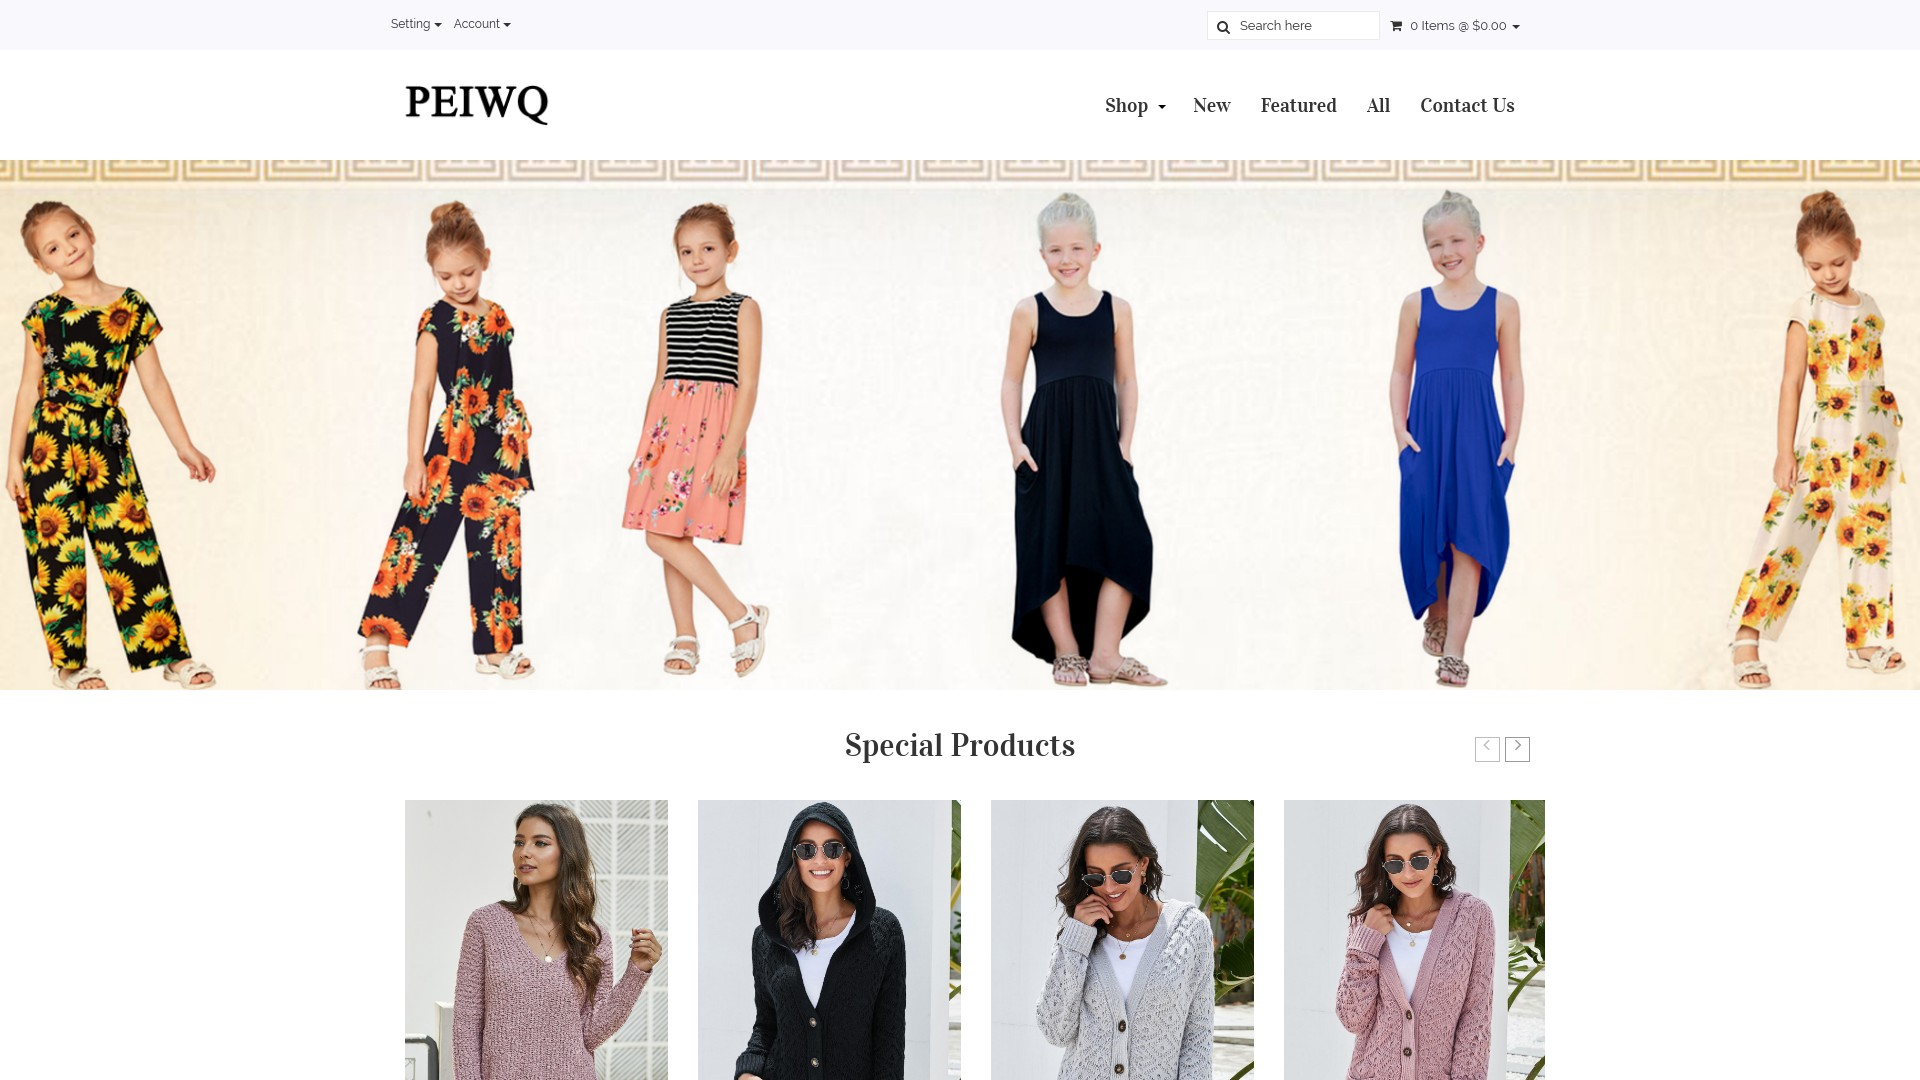 Is Peiwq.com a Scam? See the Review of the Online Store